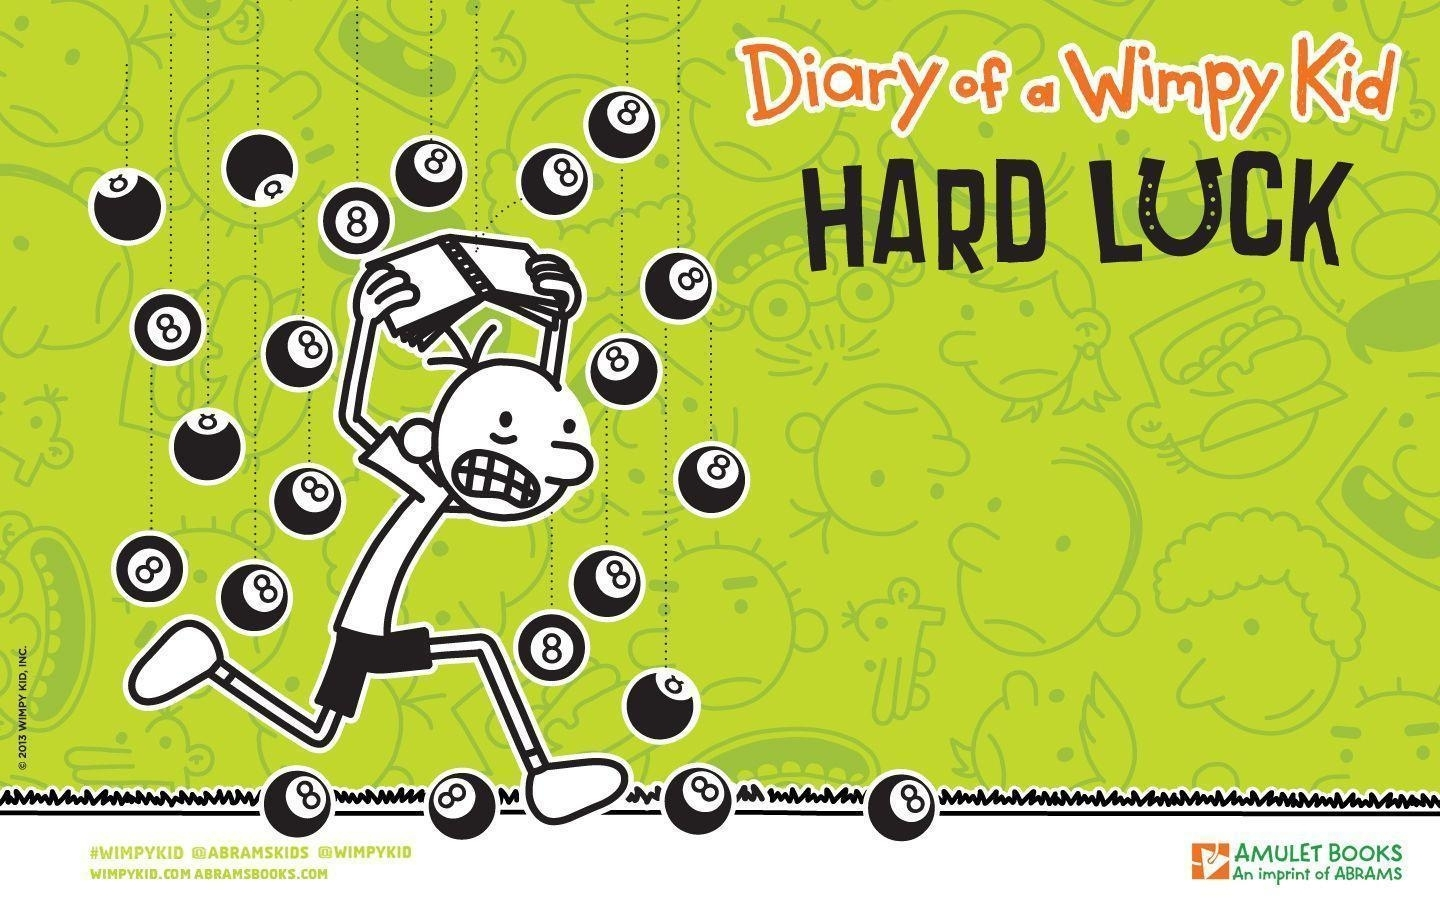 diary of a wimpy kid wallpapers - wallpaper cave